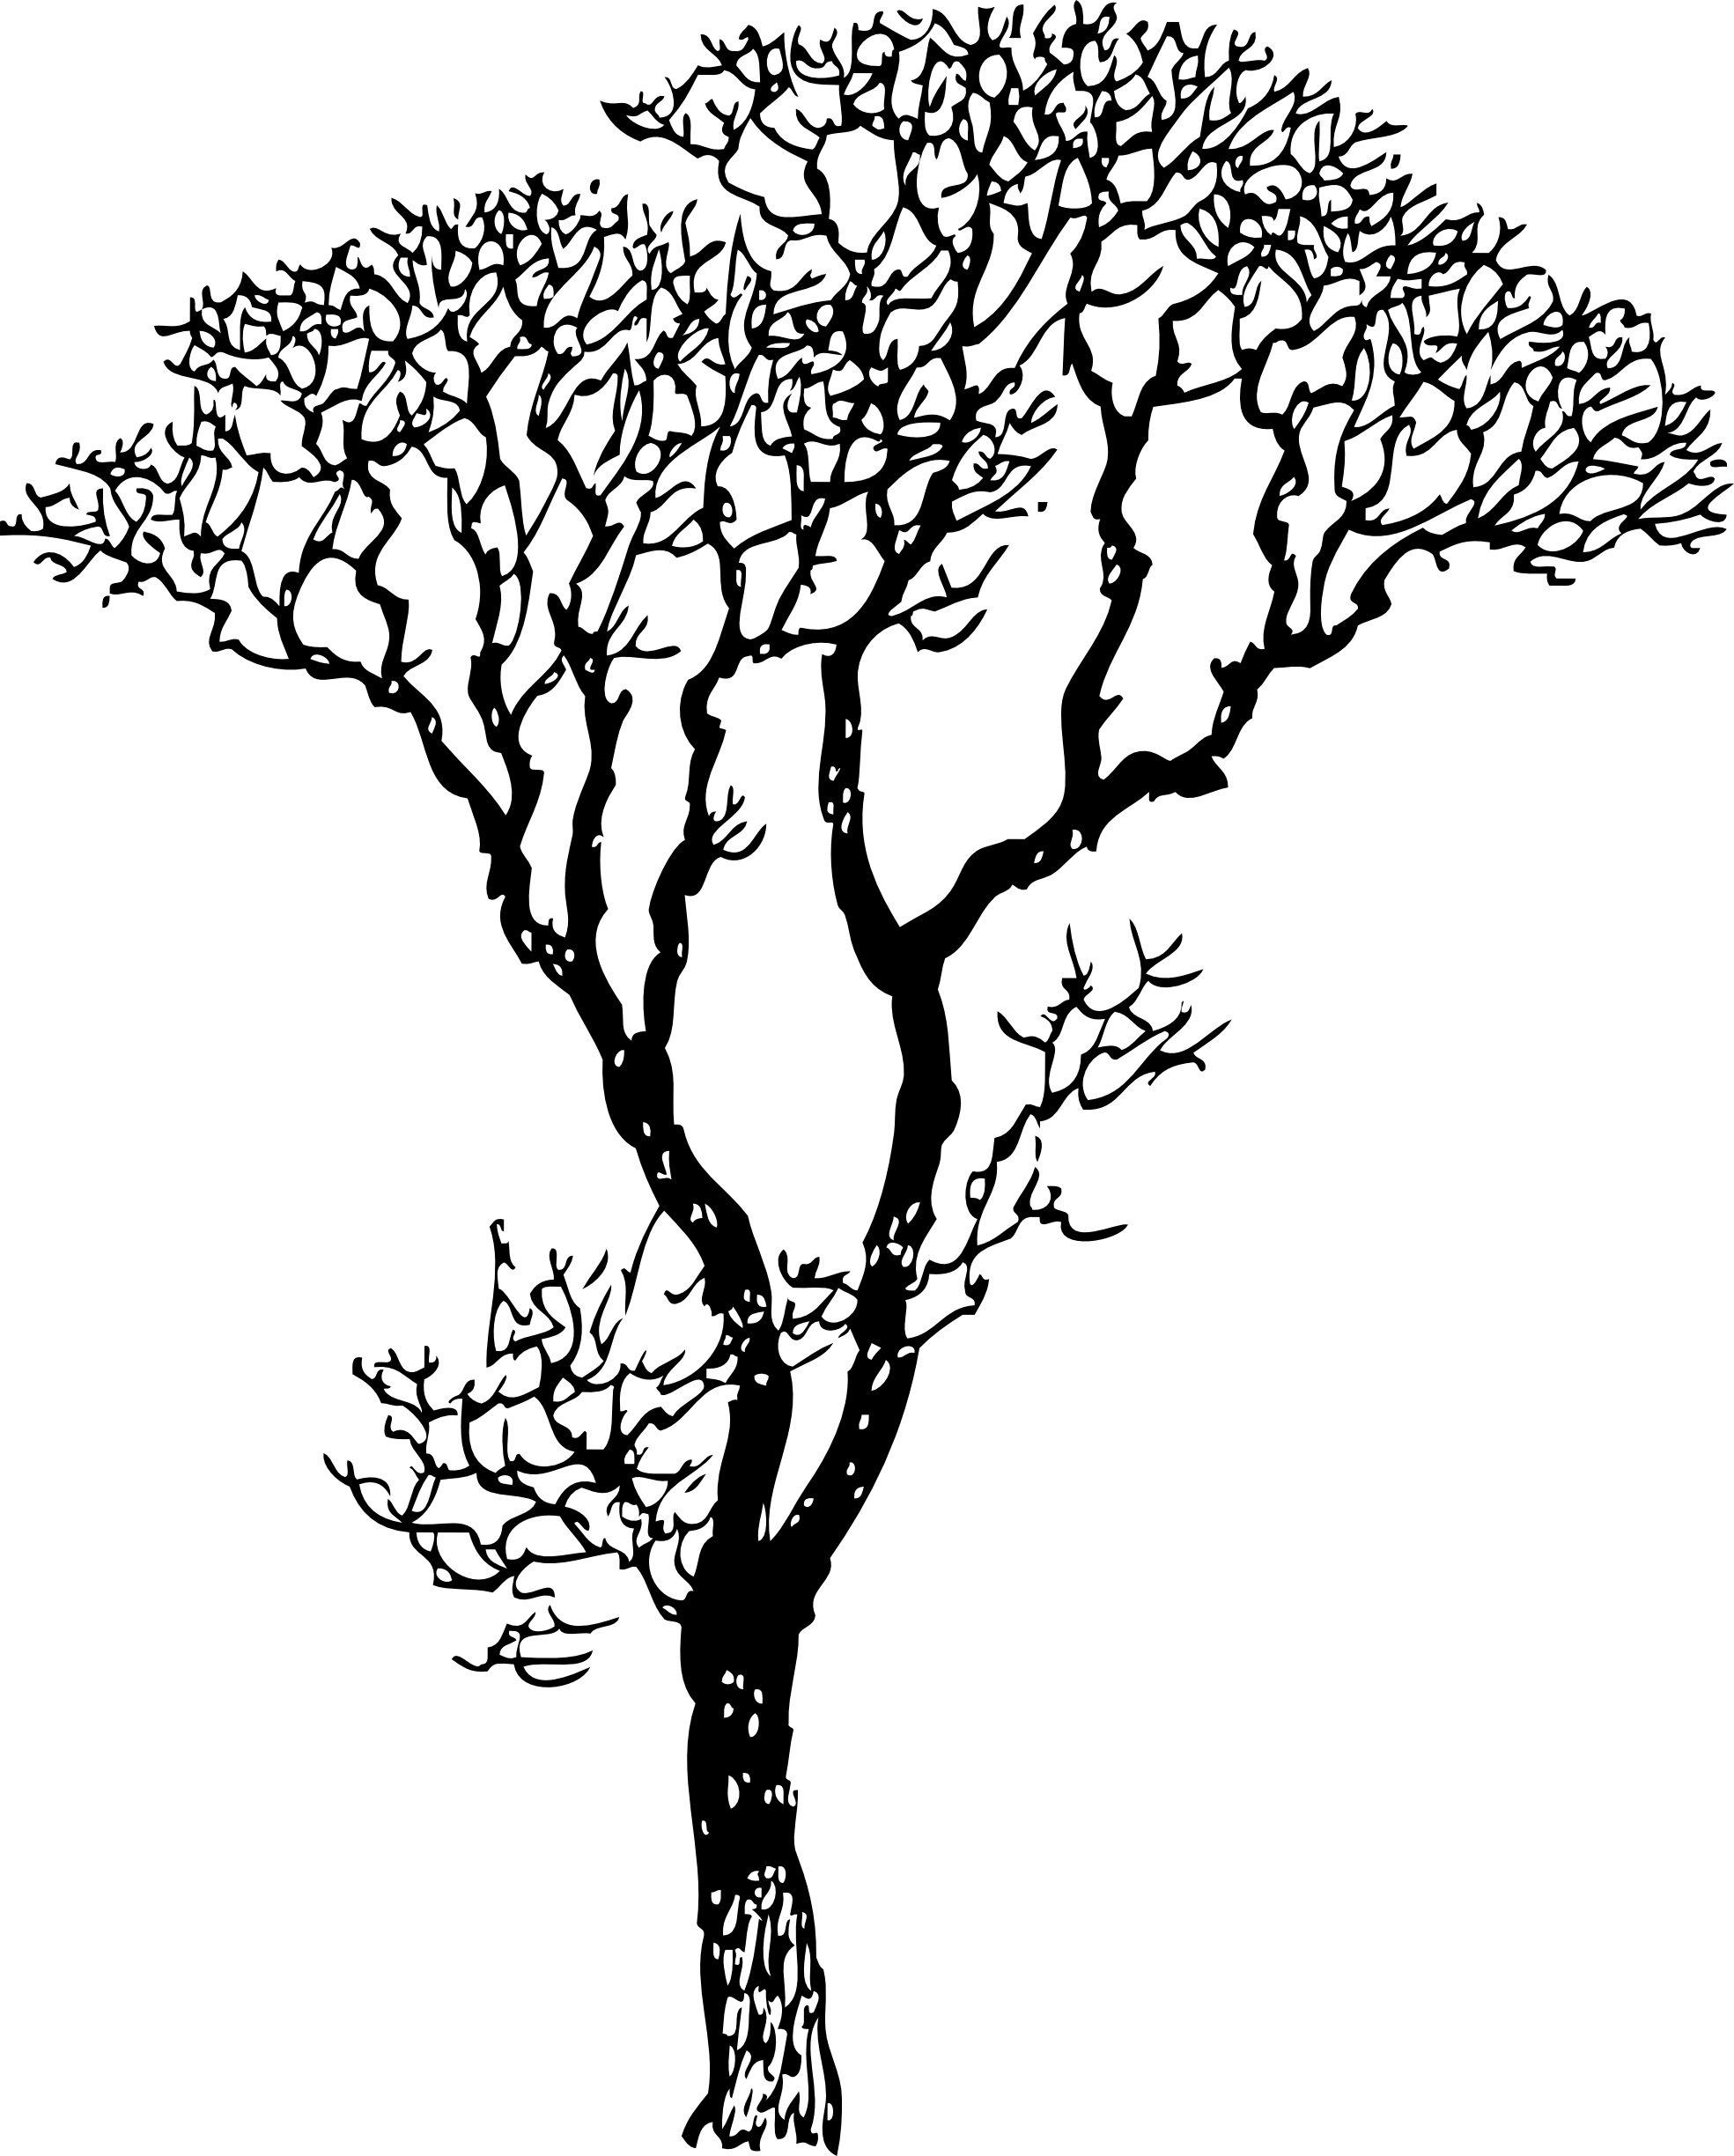 graphic royalty free download Bare black white line. Drawing charcoal tree